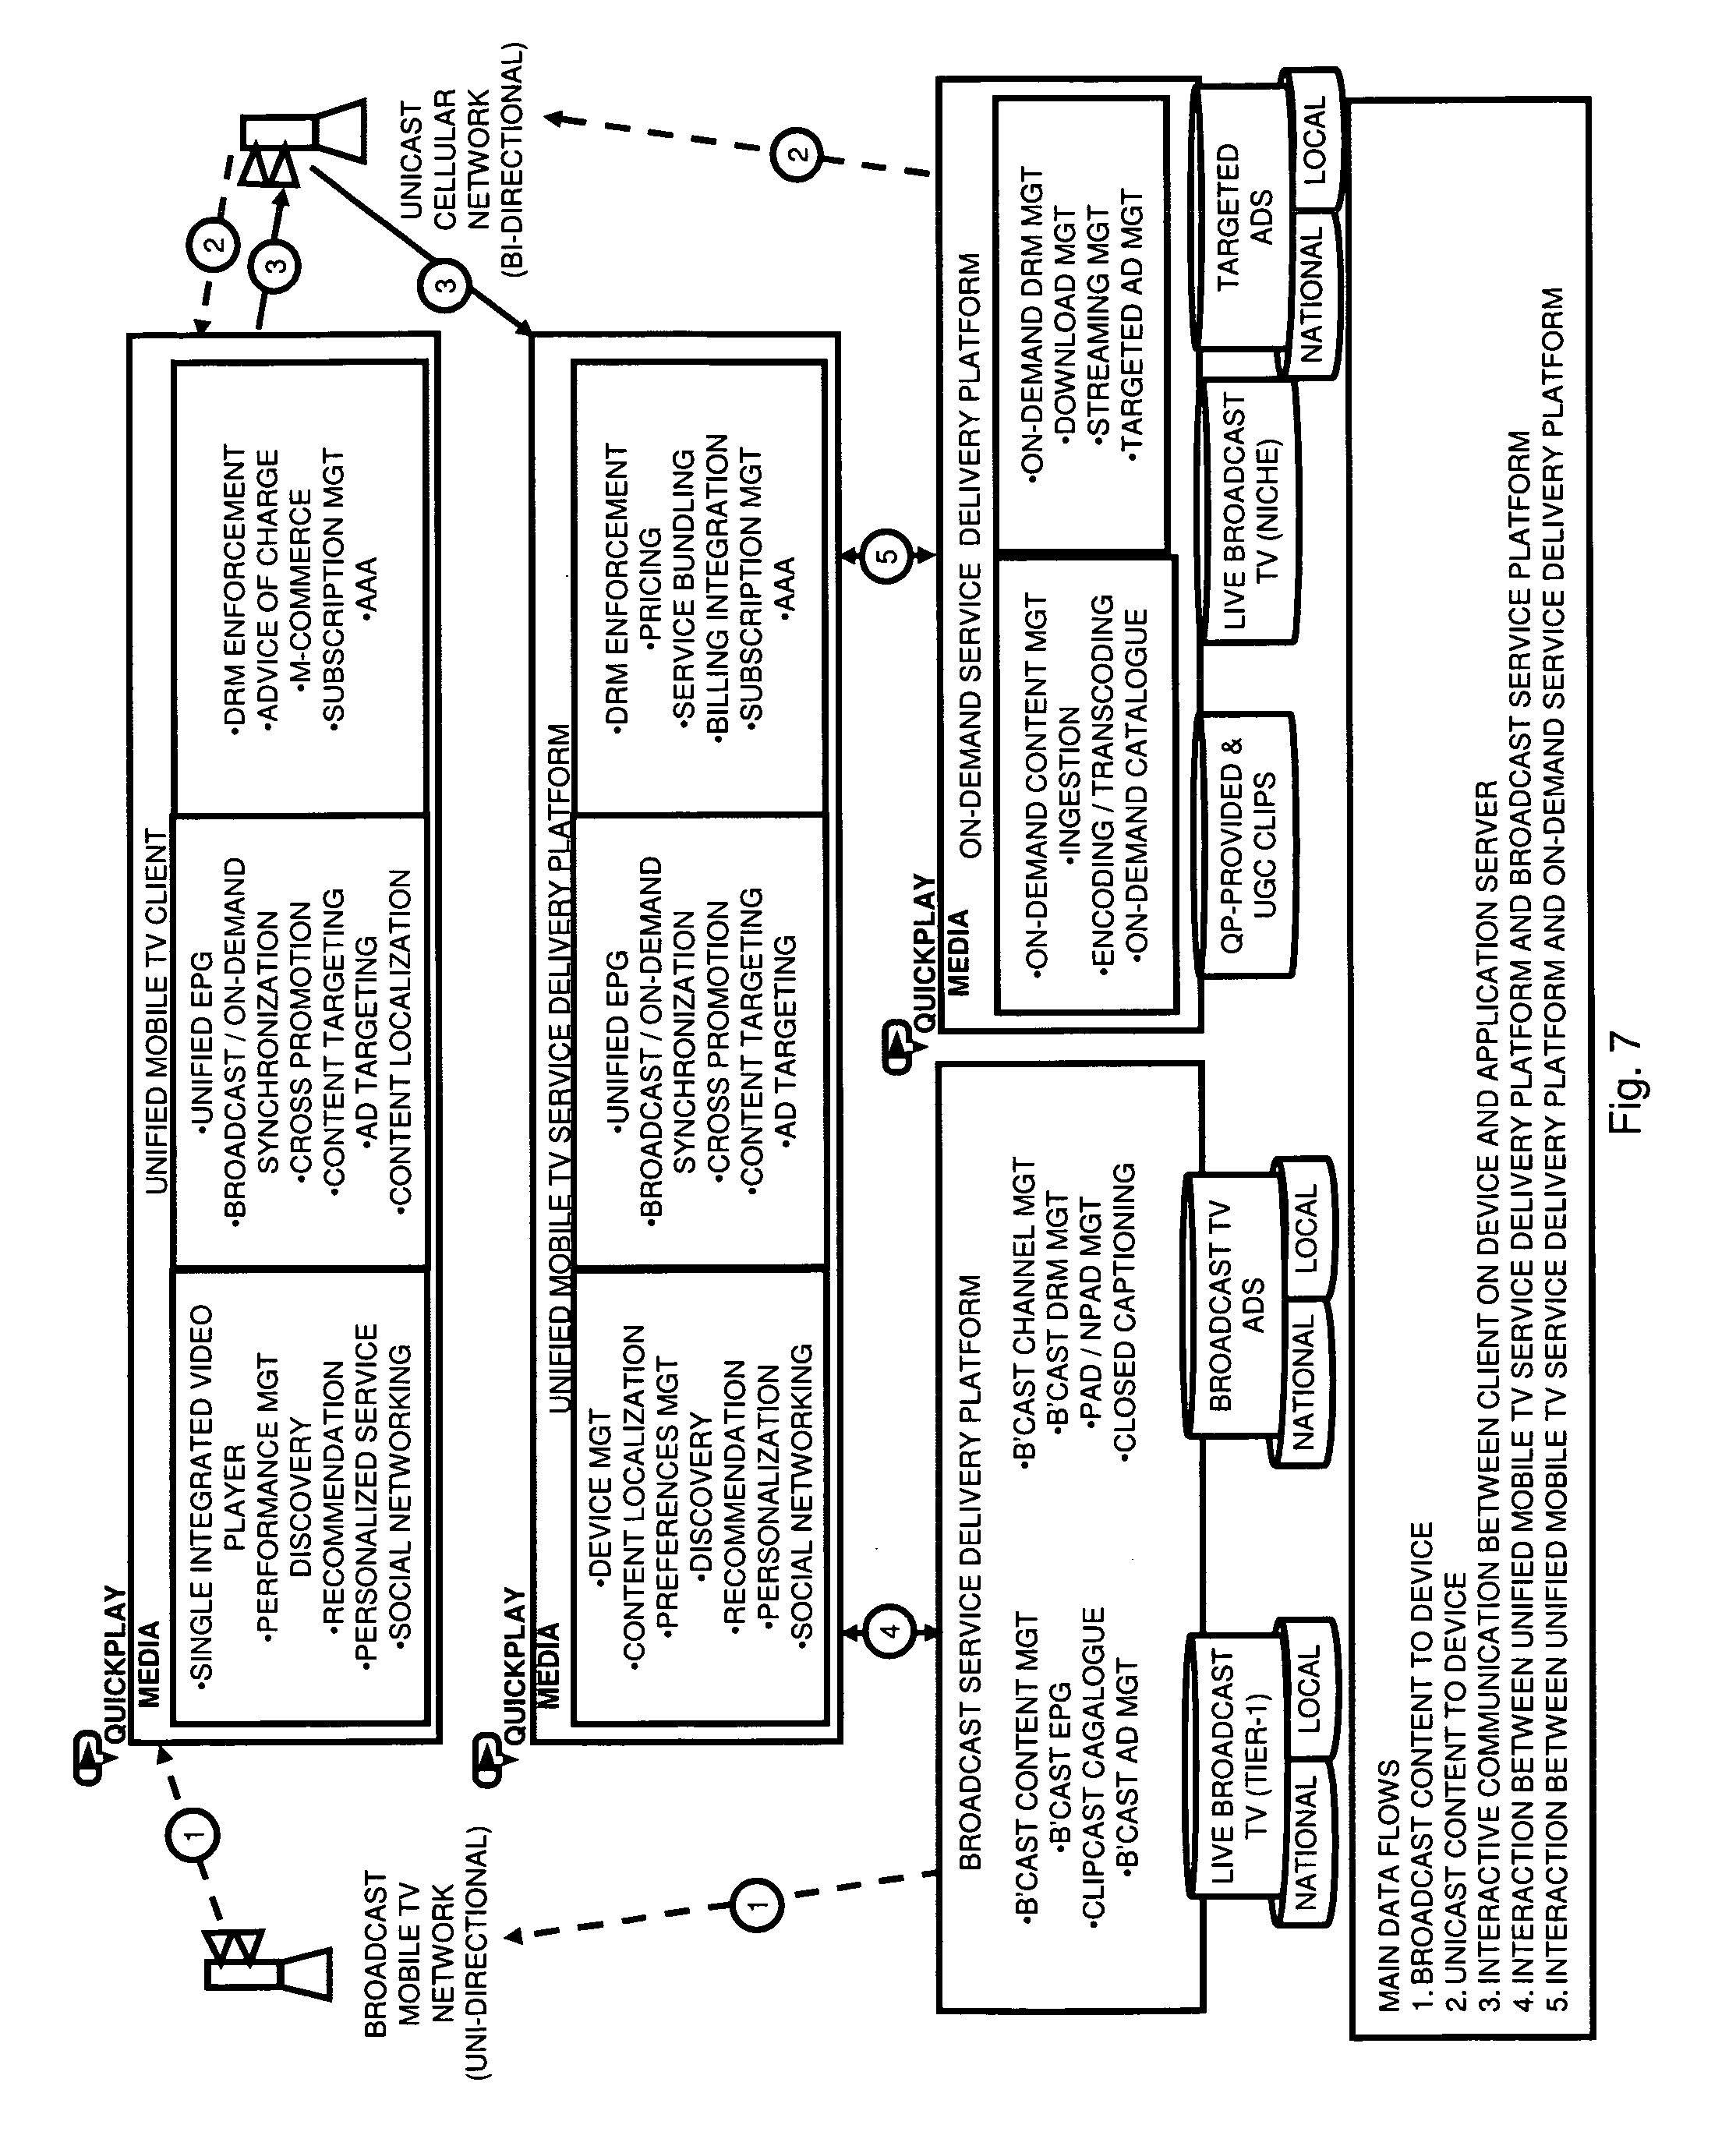 Patent Us8671021 Consumption Profile For Mobile Media Google Patents Satellite Tv Network Diagram Webbased Drawing